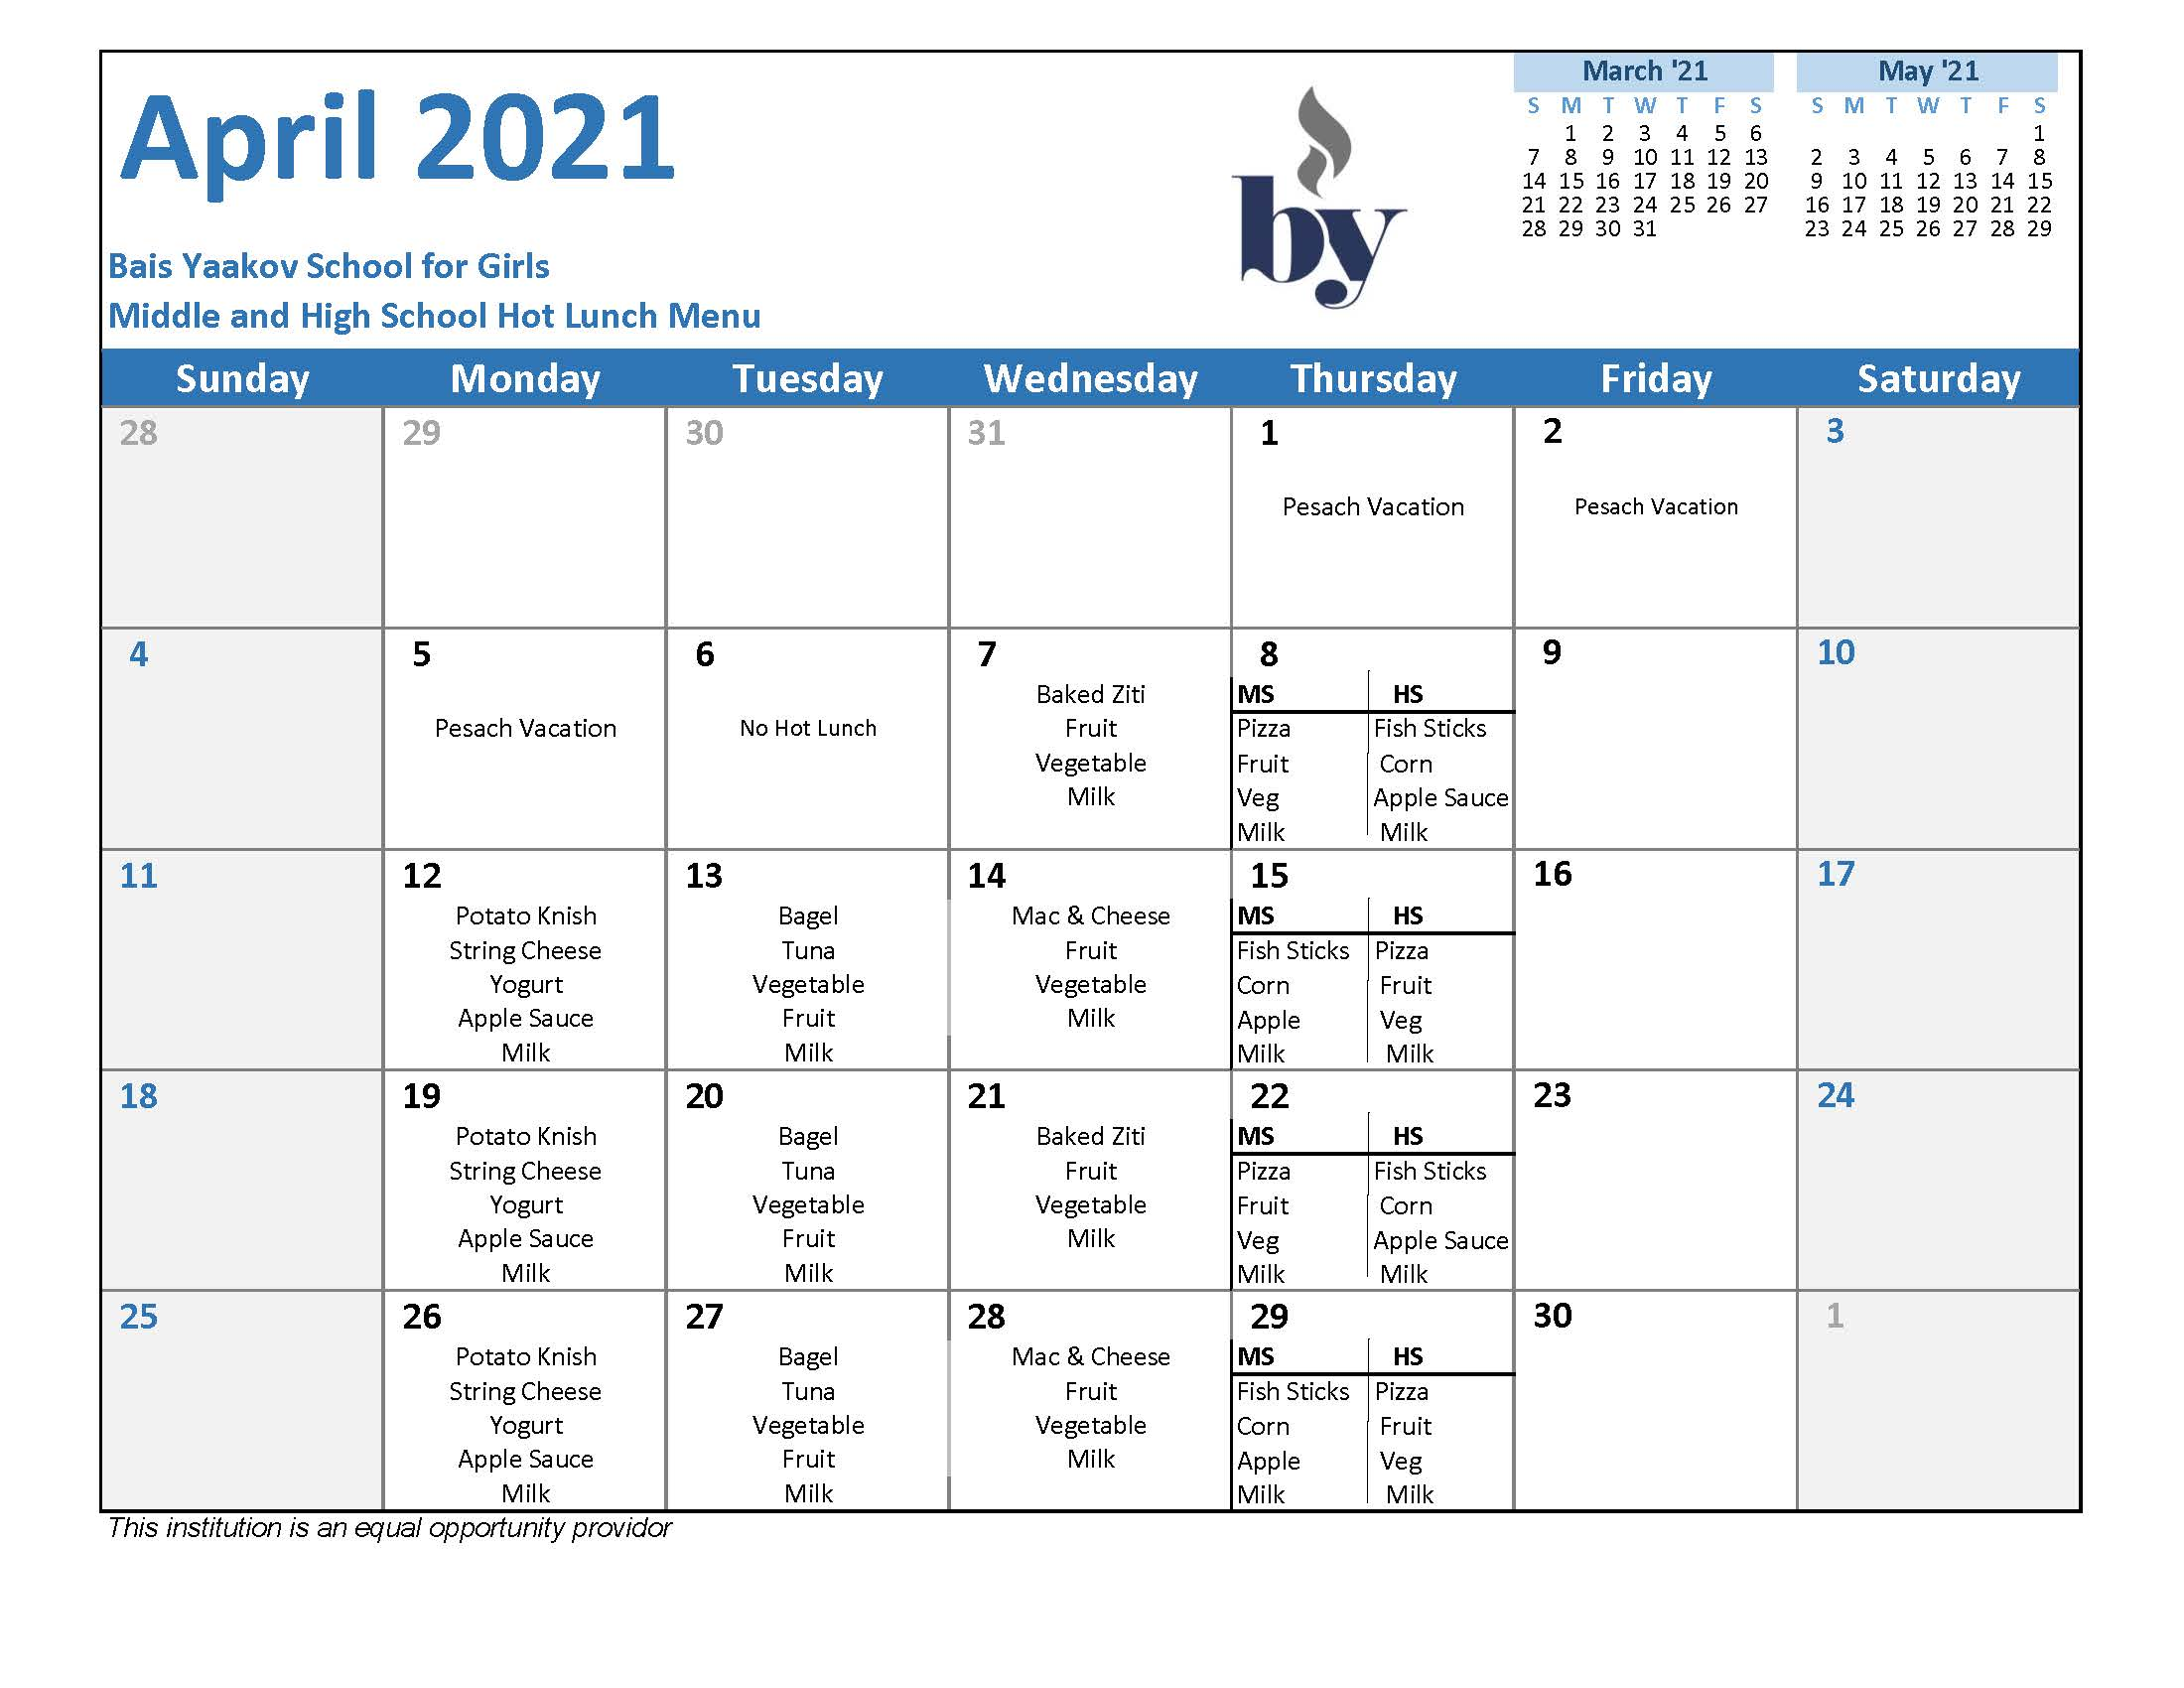 Middle and High School April Menu